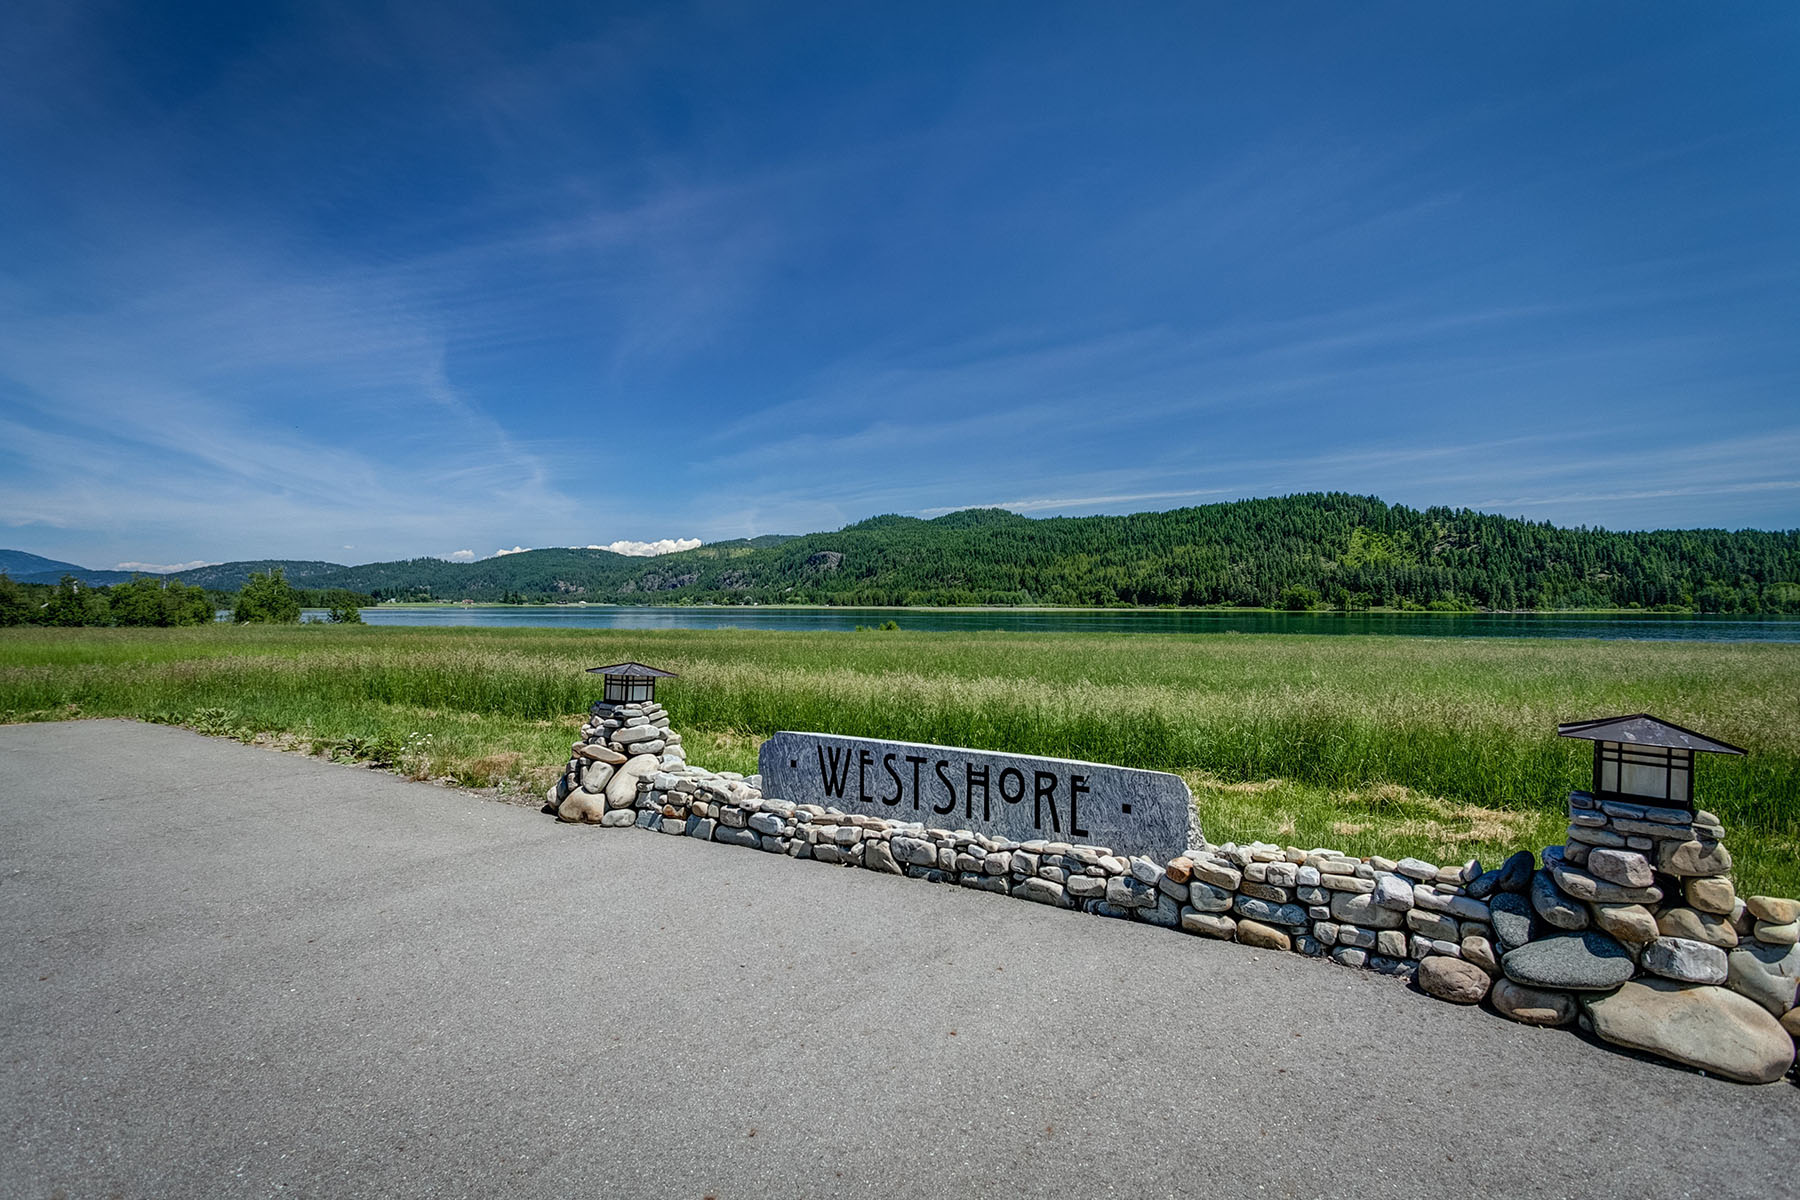 Land for Sale at Westshore Waterfront Building Sites Lot 7 Westshore Way, Laclede, Idaho, 83841 United States